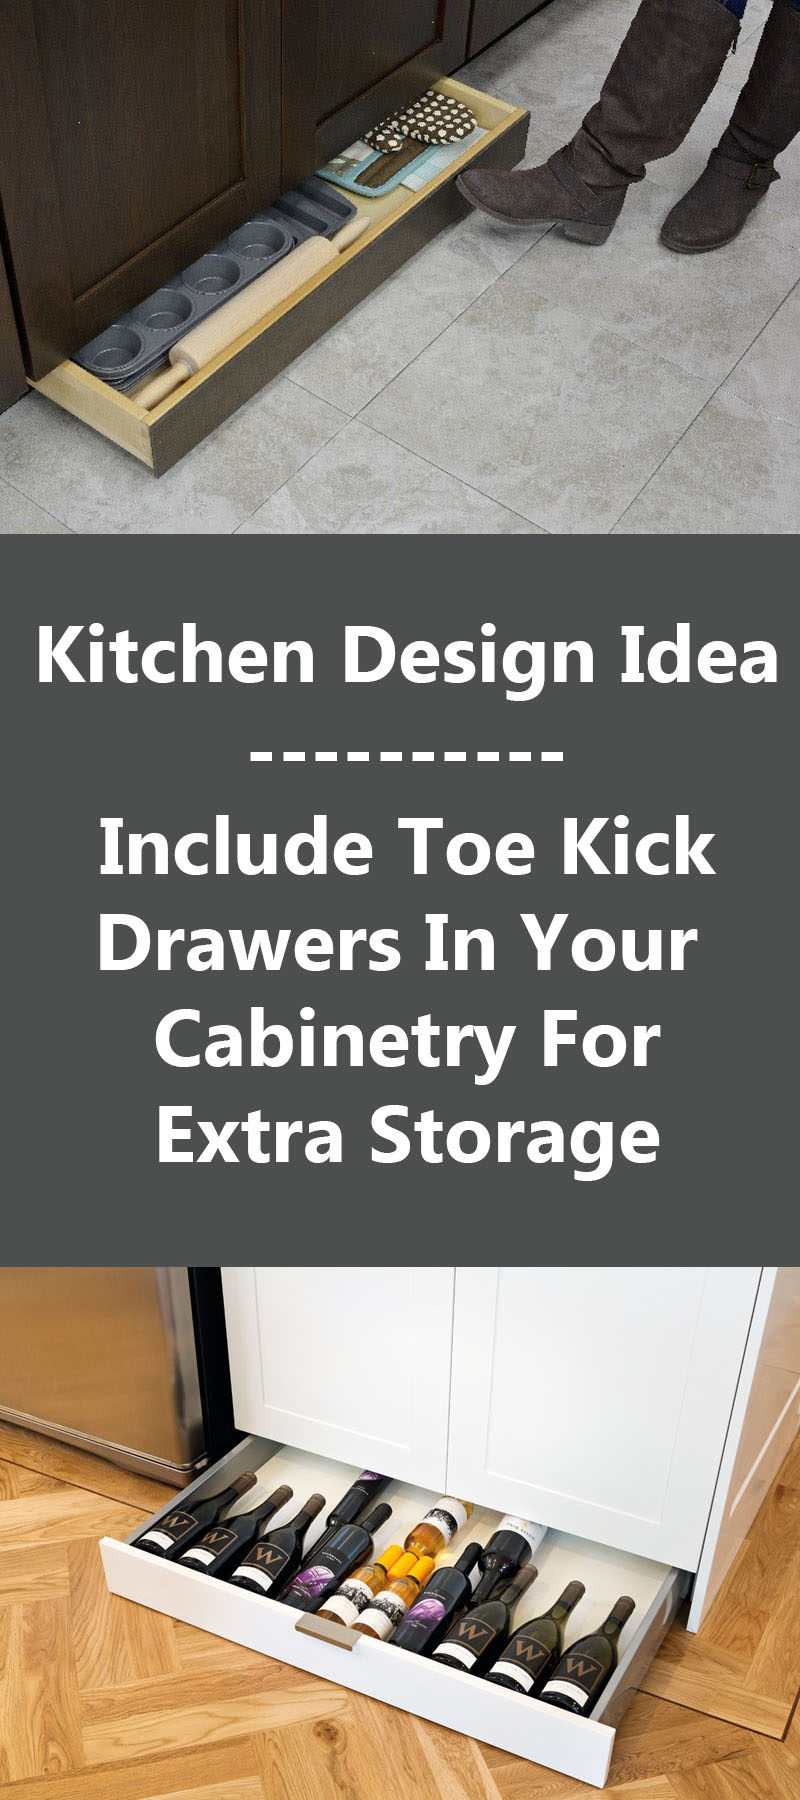 Kitchen Design Idea   Include Toe Kick Drawers In Your Cabinetry For Extra  Storage